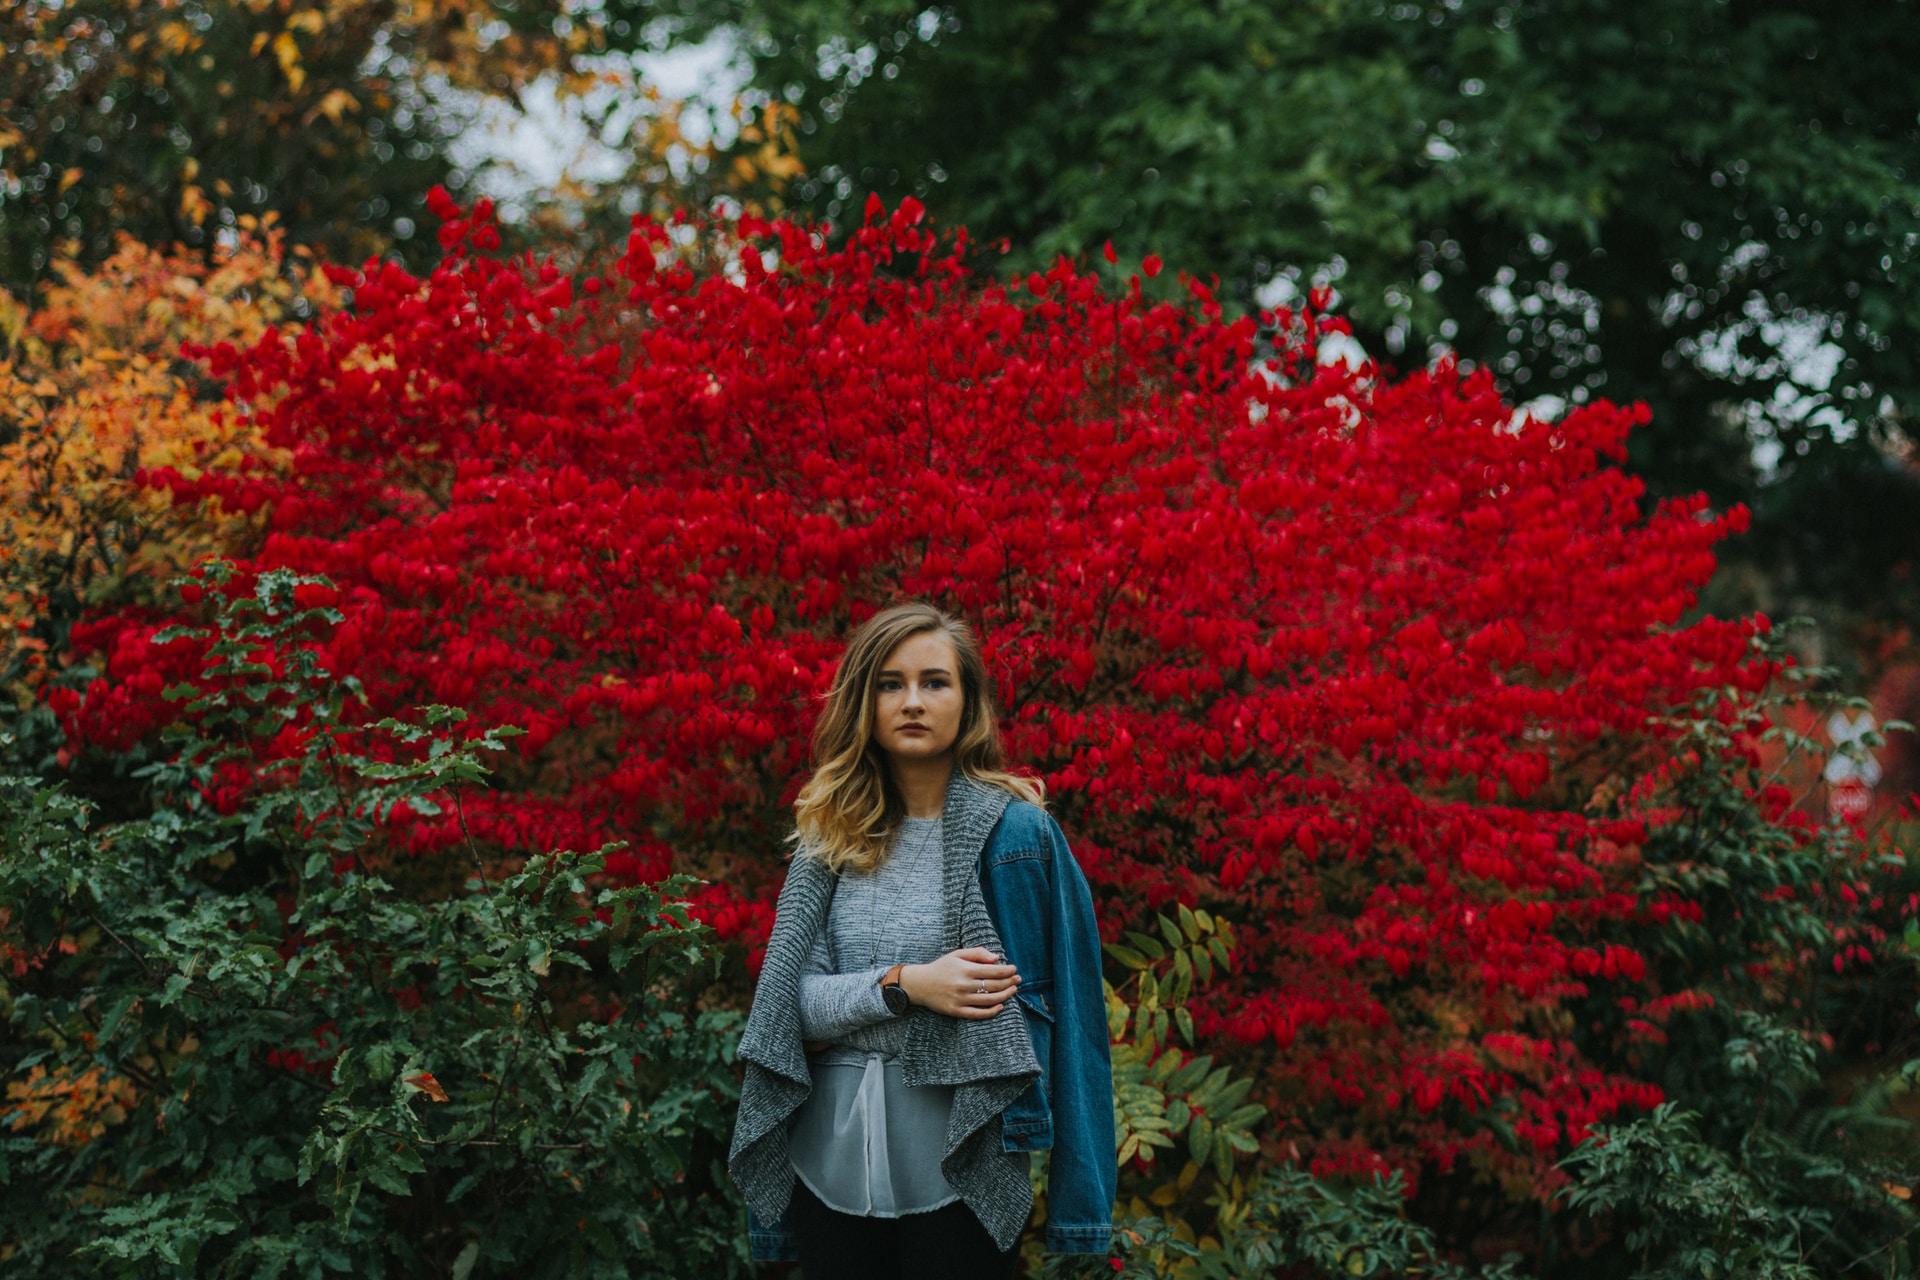 woman in blue cardigan standing near red petaled flowers